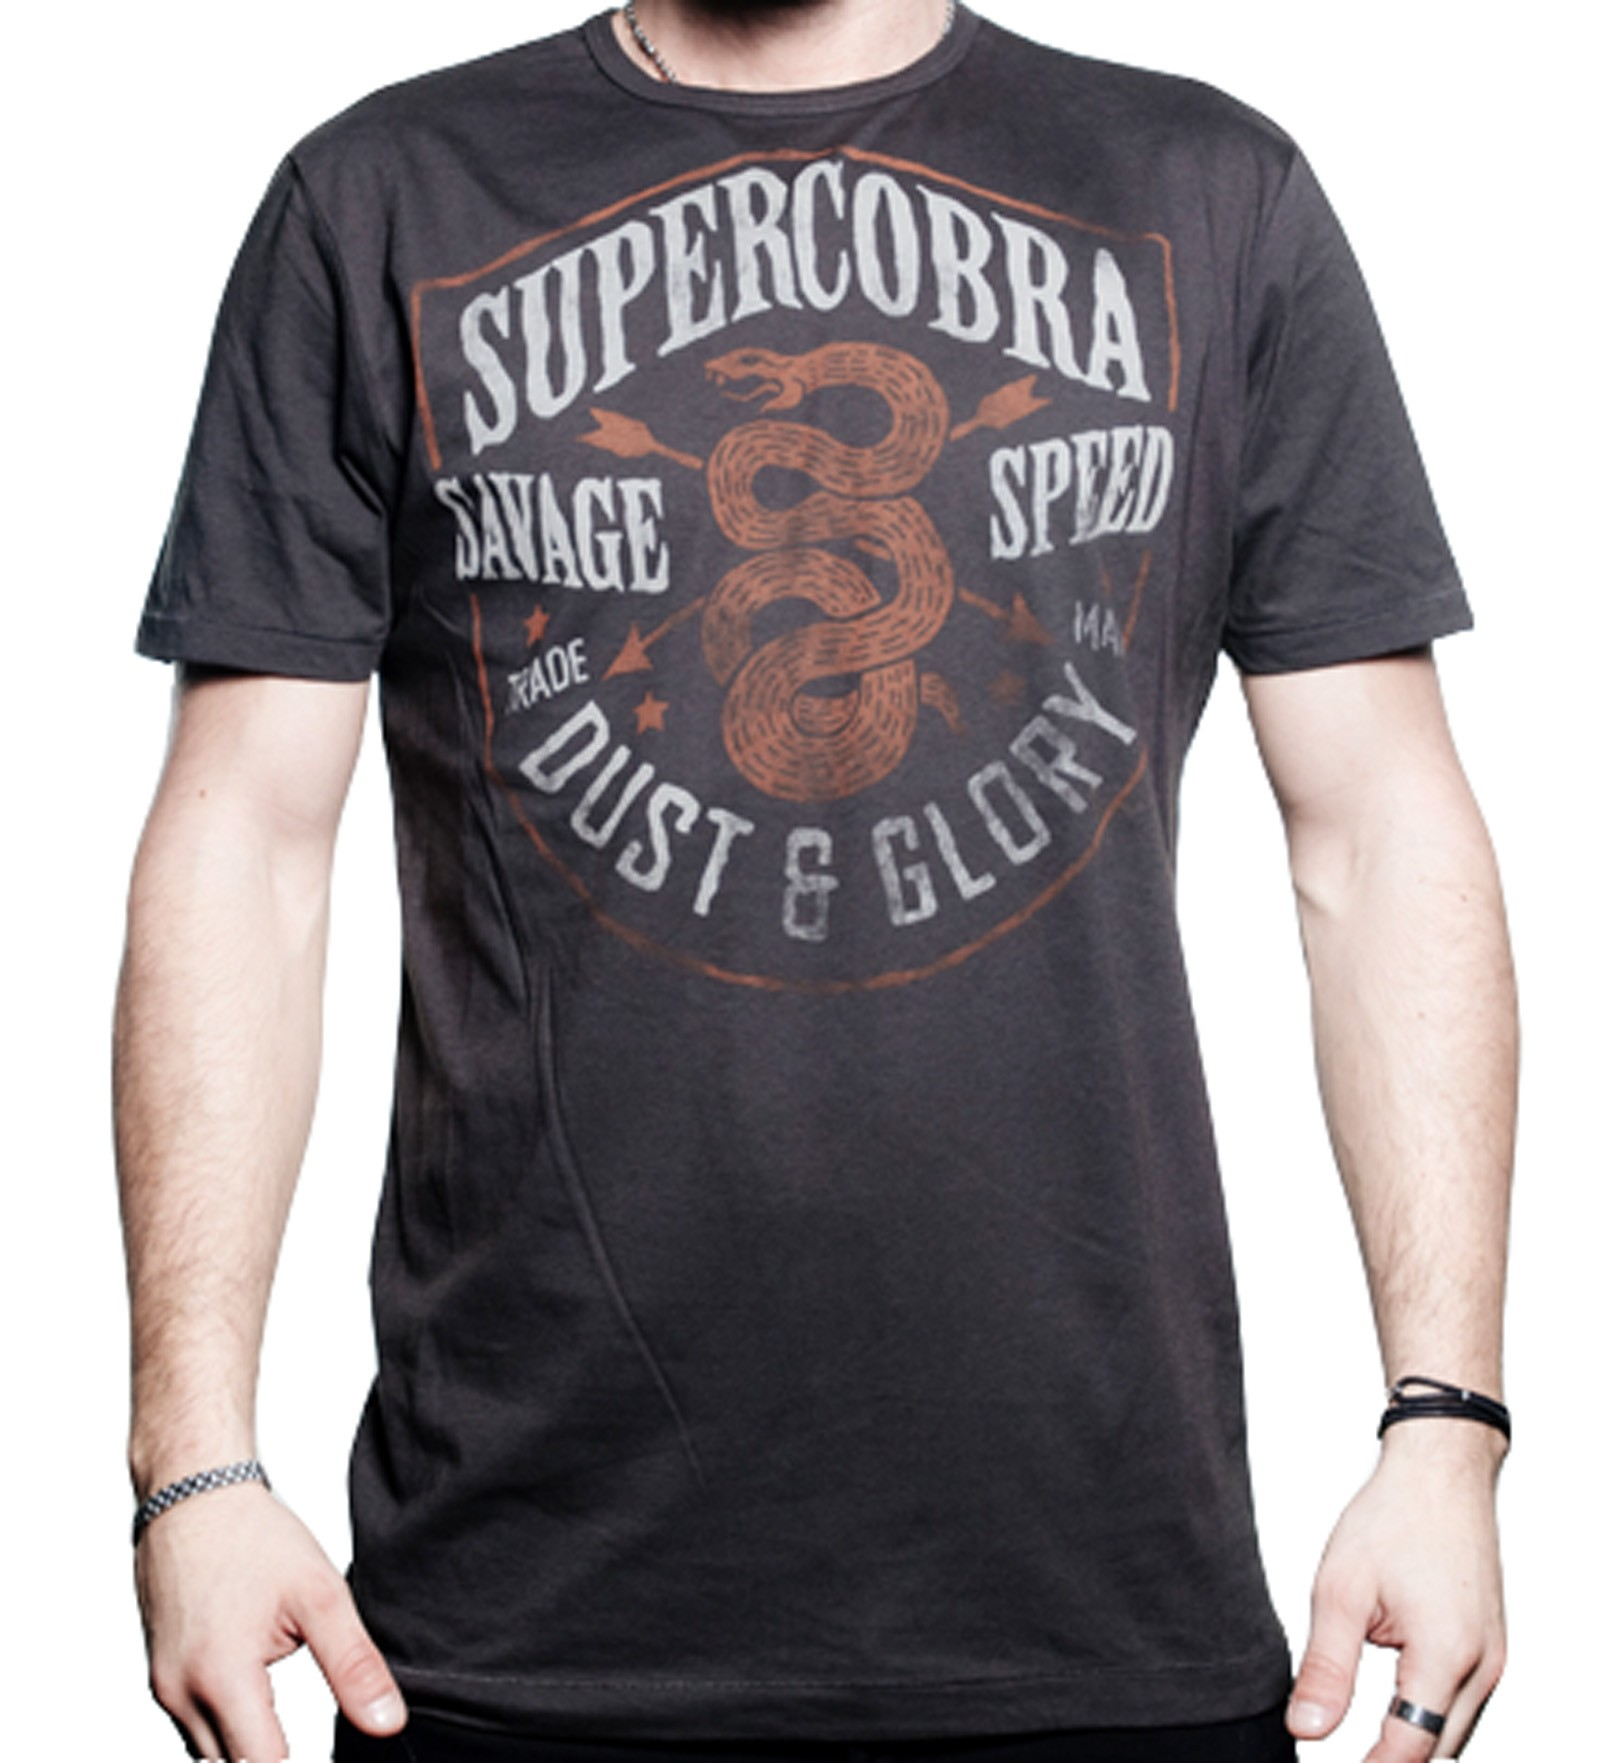 Supercobra Clothing Company - Dust & Glory T-Shirt Front